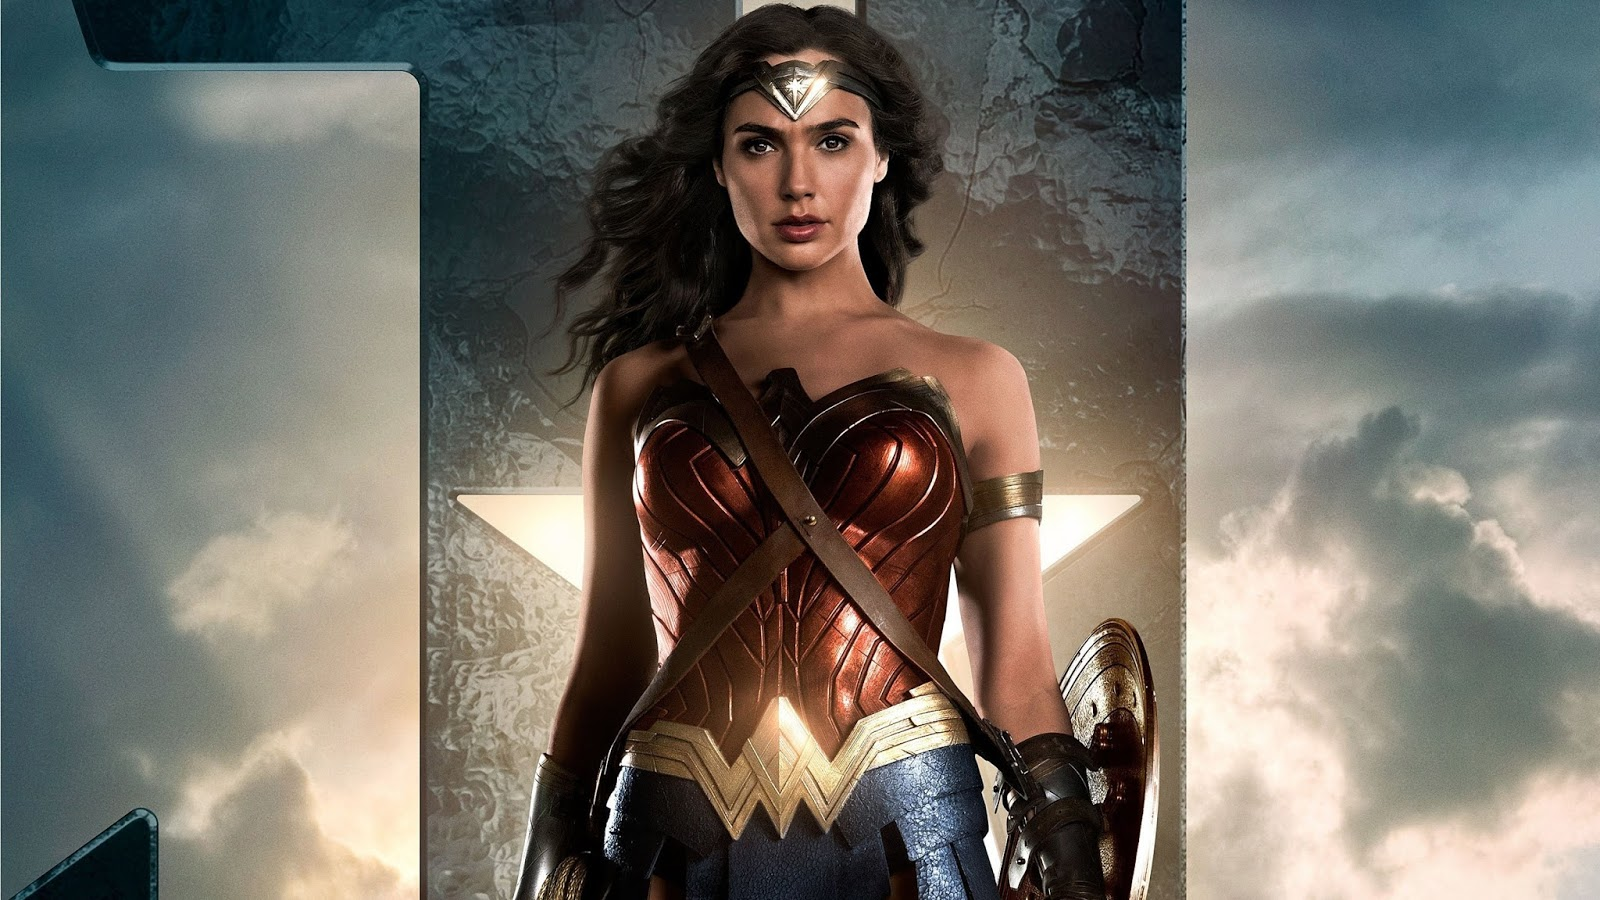 Justice League Wonder Woman HD Wallpaper,Justice League Full HD Wallpapers